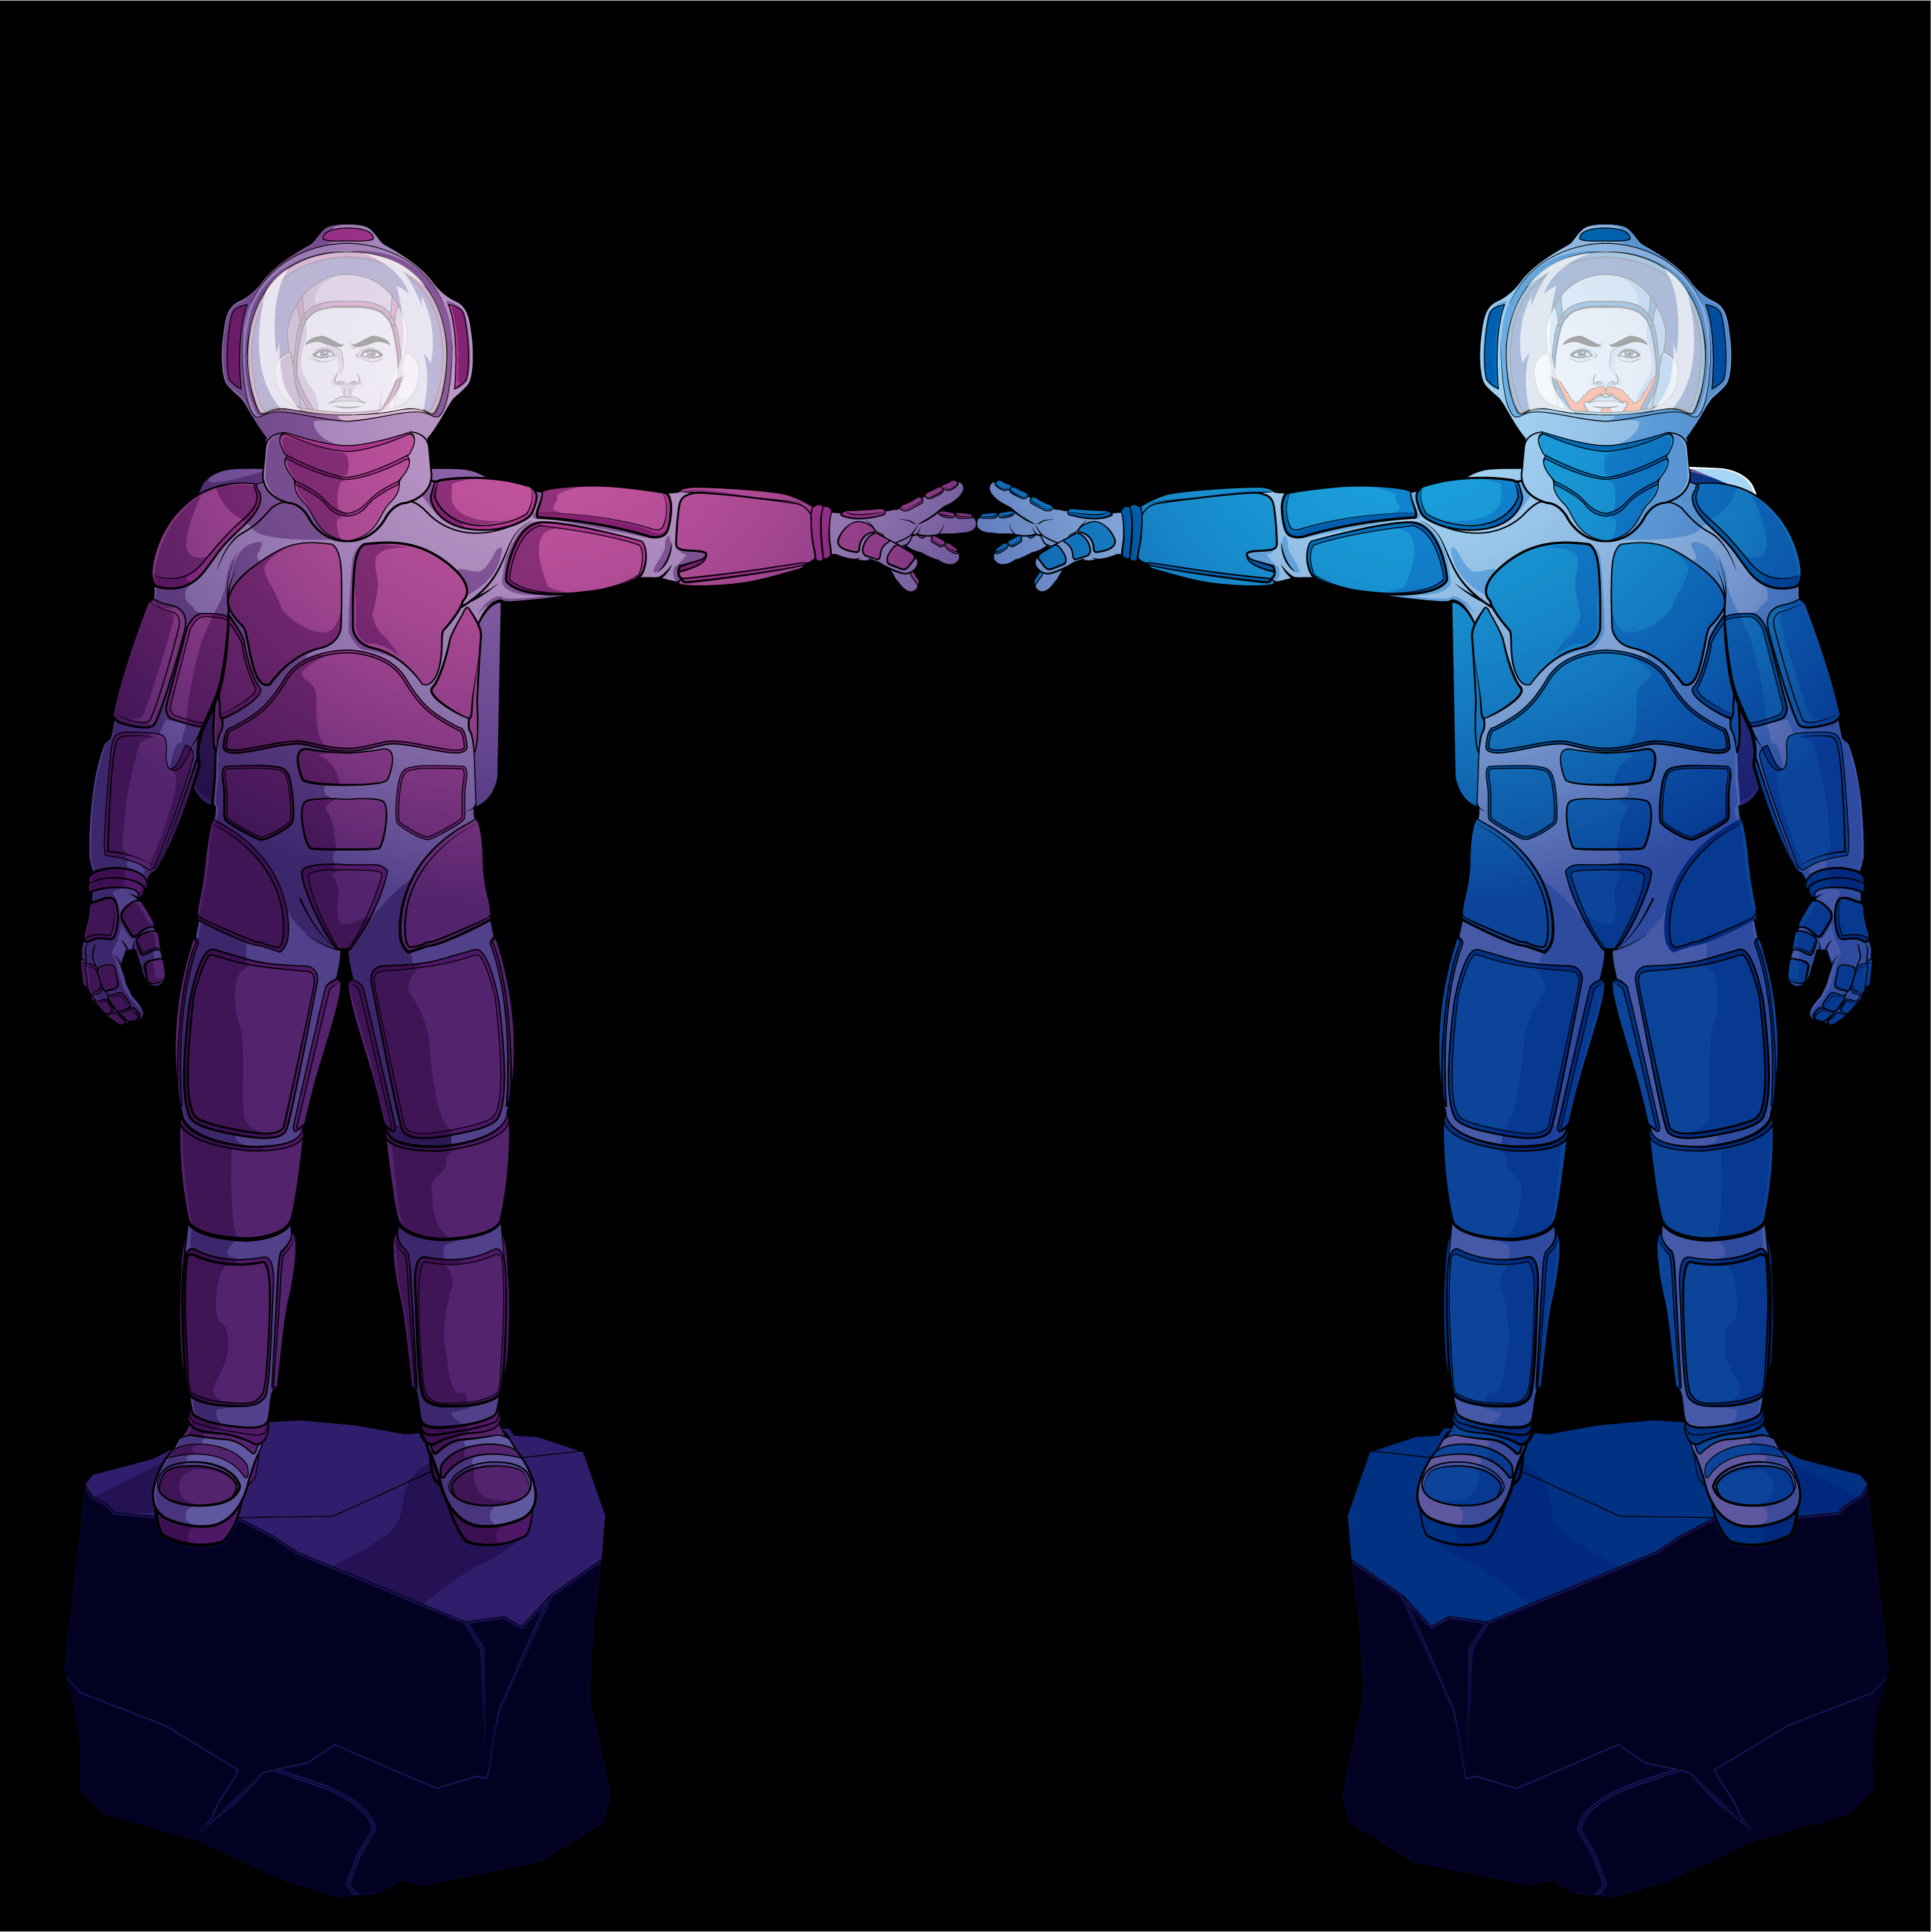 two astronauts grabbing hands